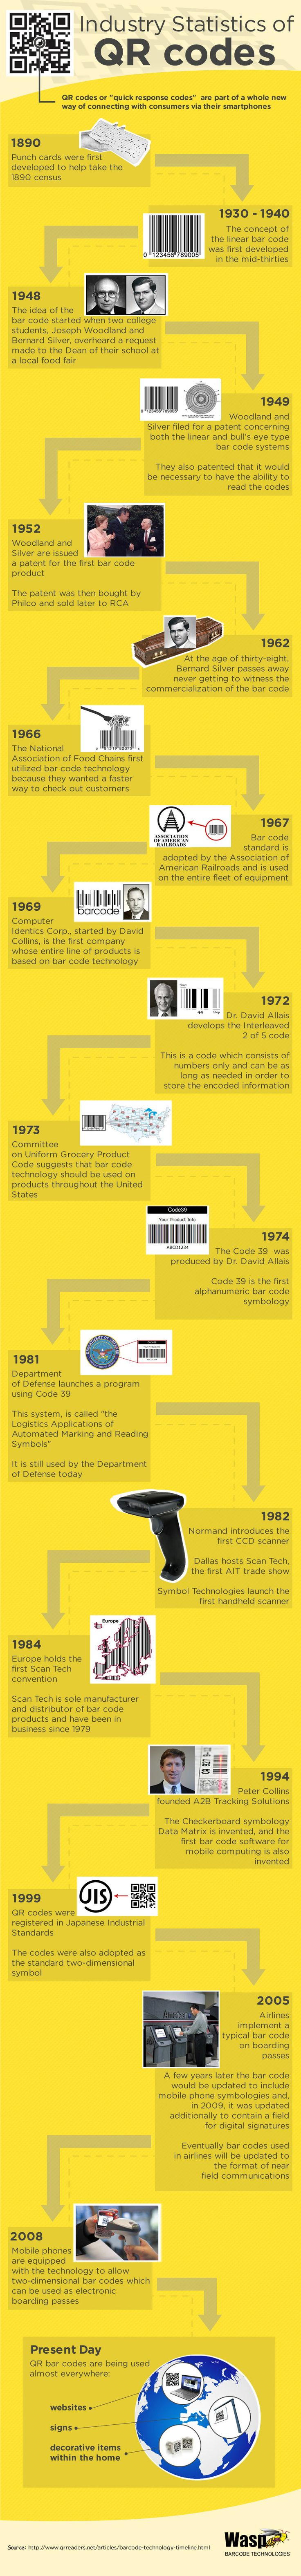 How #QR Codes Have Evolved Over Time? | #infographic